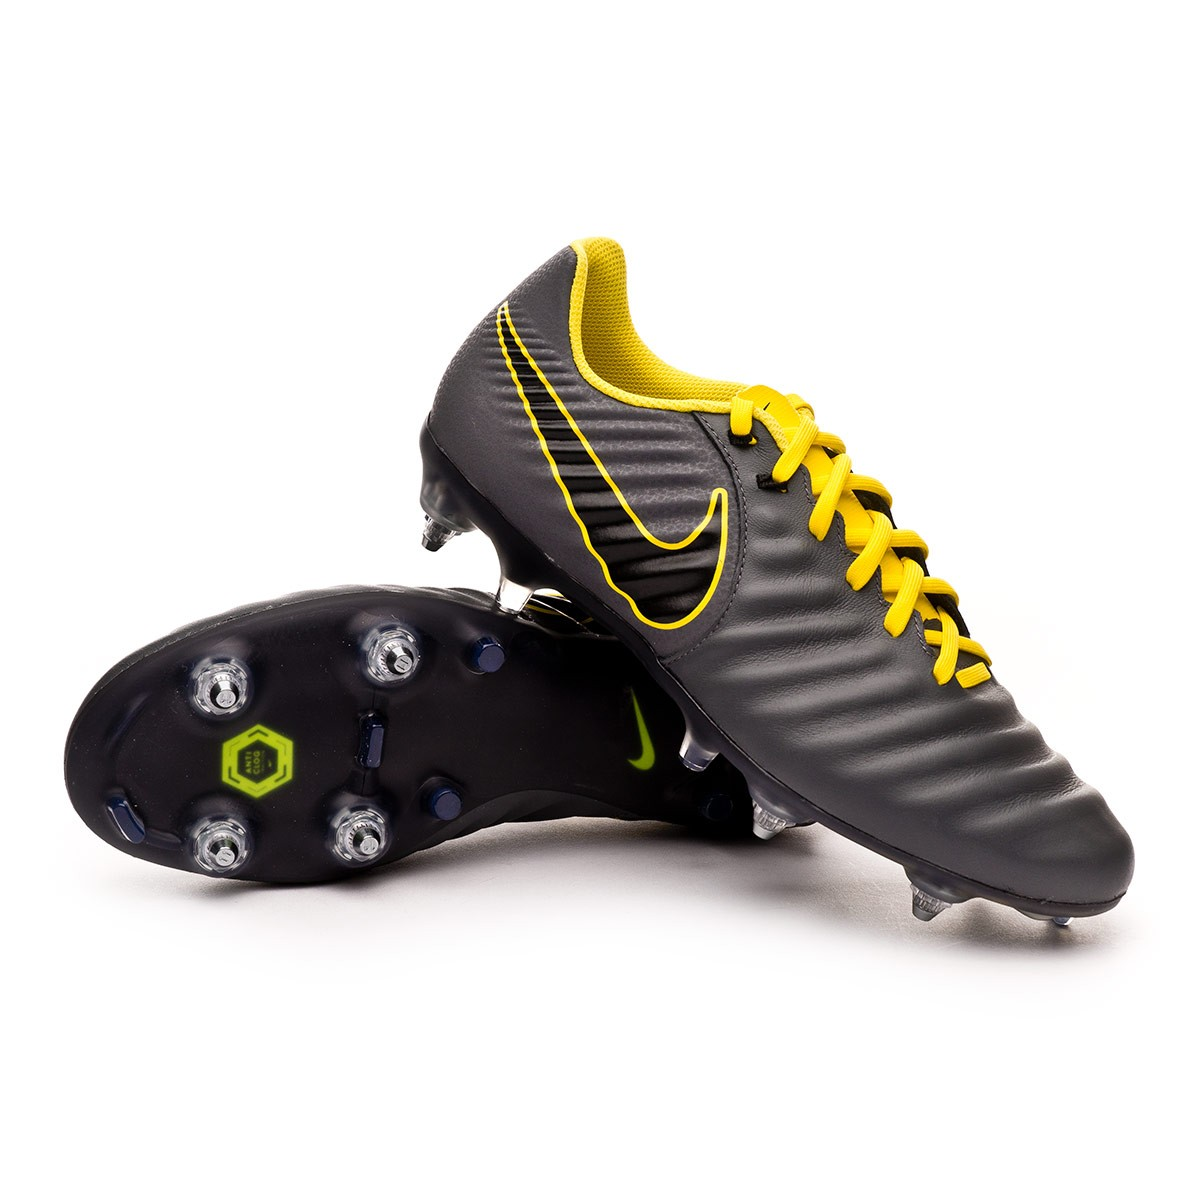 lowest price 0d9af fe891 Football Boots Nike Tiempo Legend VII Academy SG-Pro ACC Dark  grey-Black-Optical yellow - Football store Fútbol Emotion